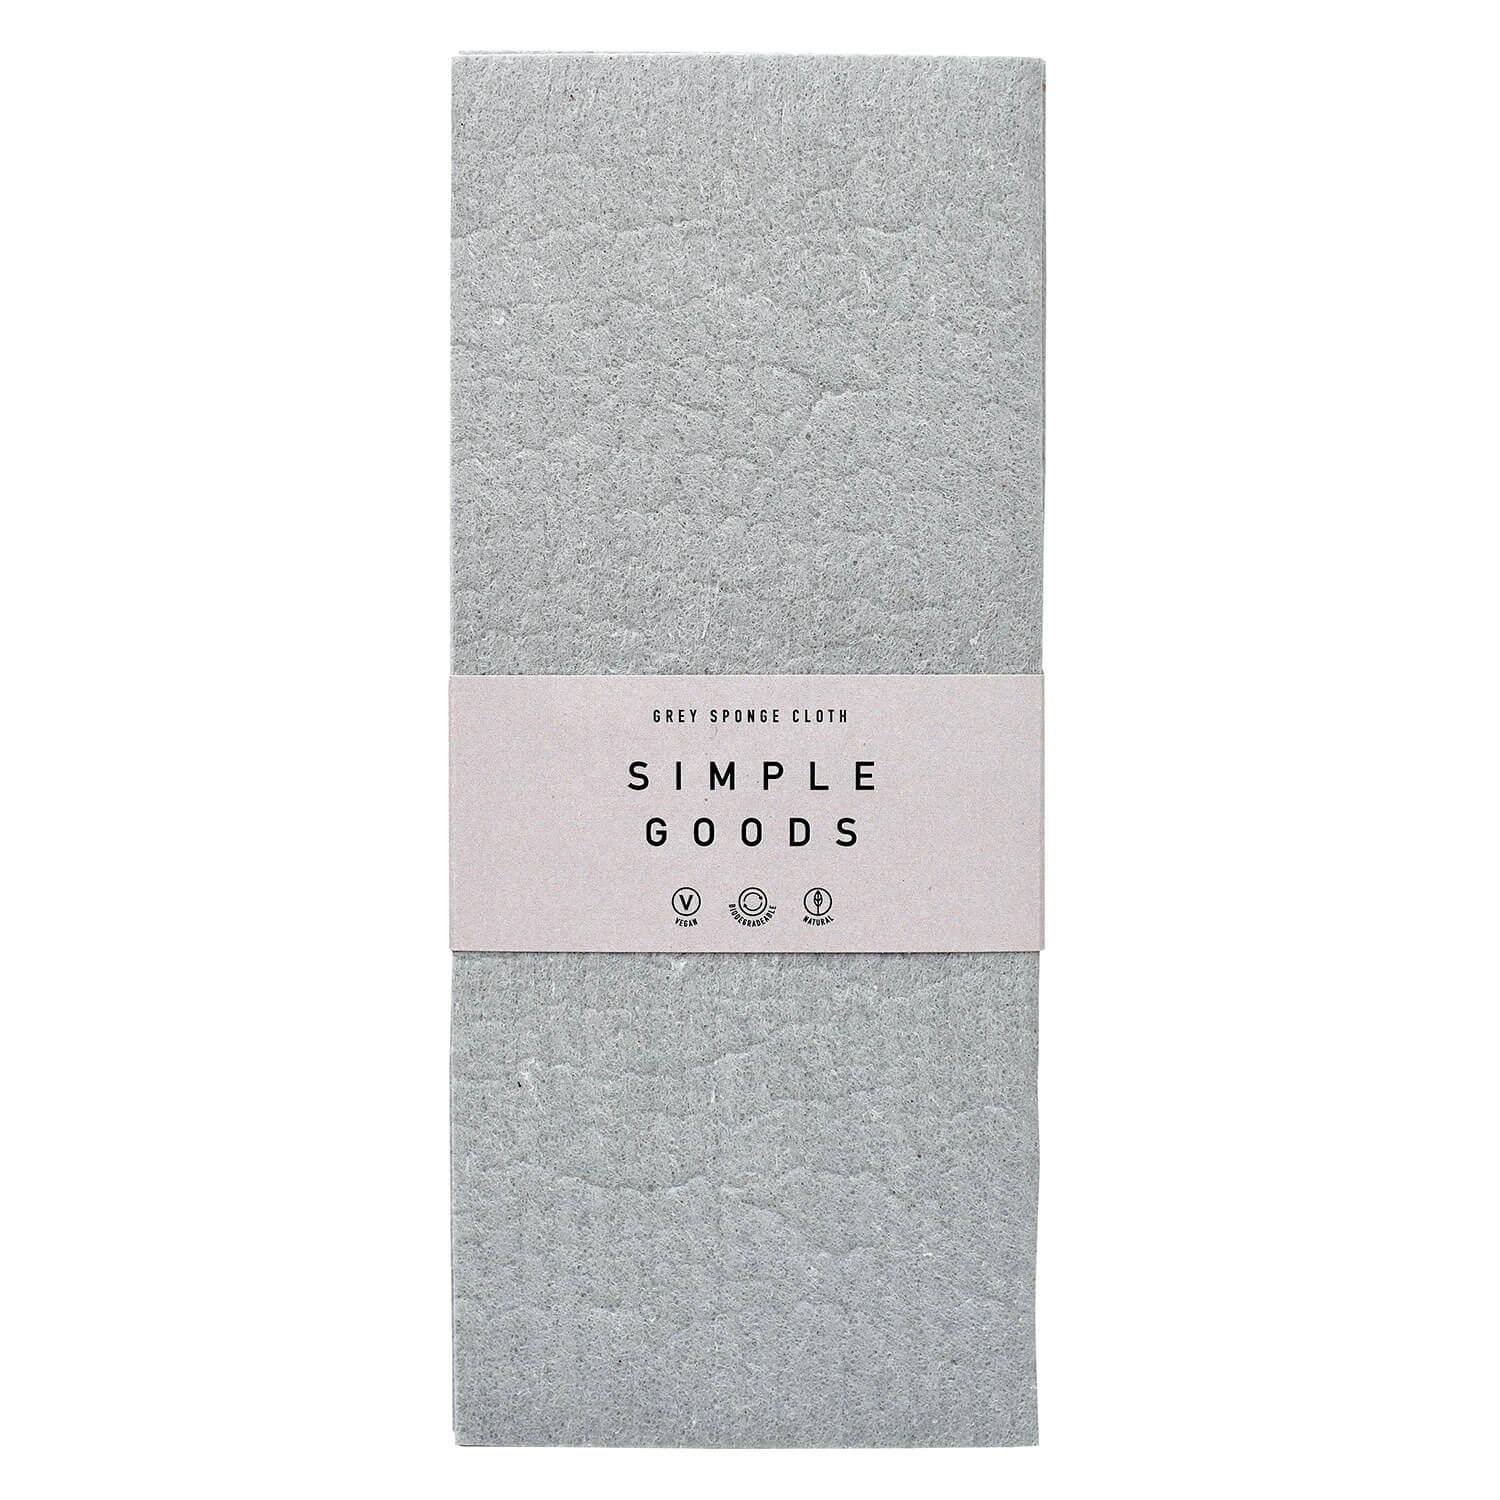 SIMPLE GOODS - Sponge Cloth Grey